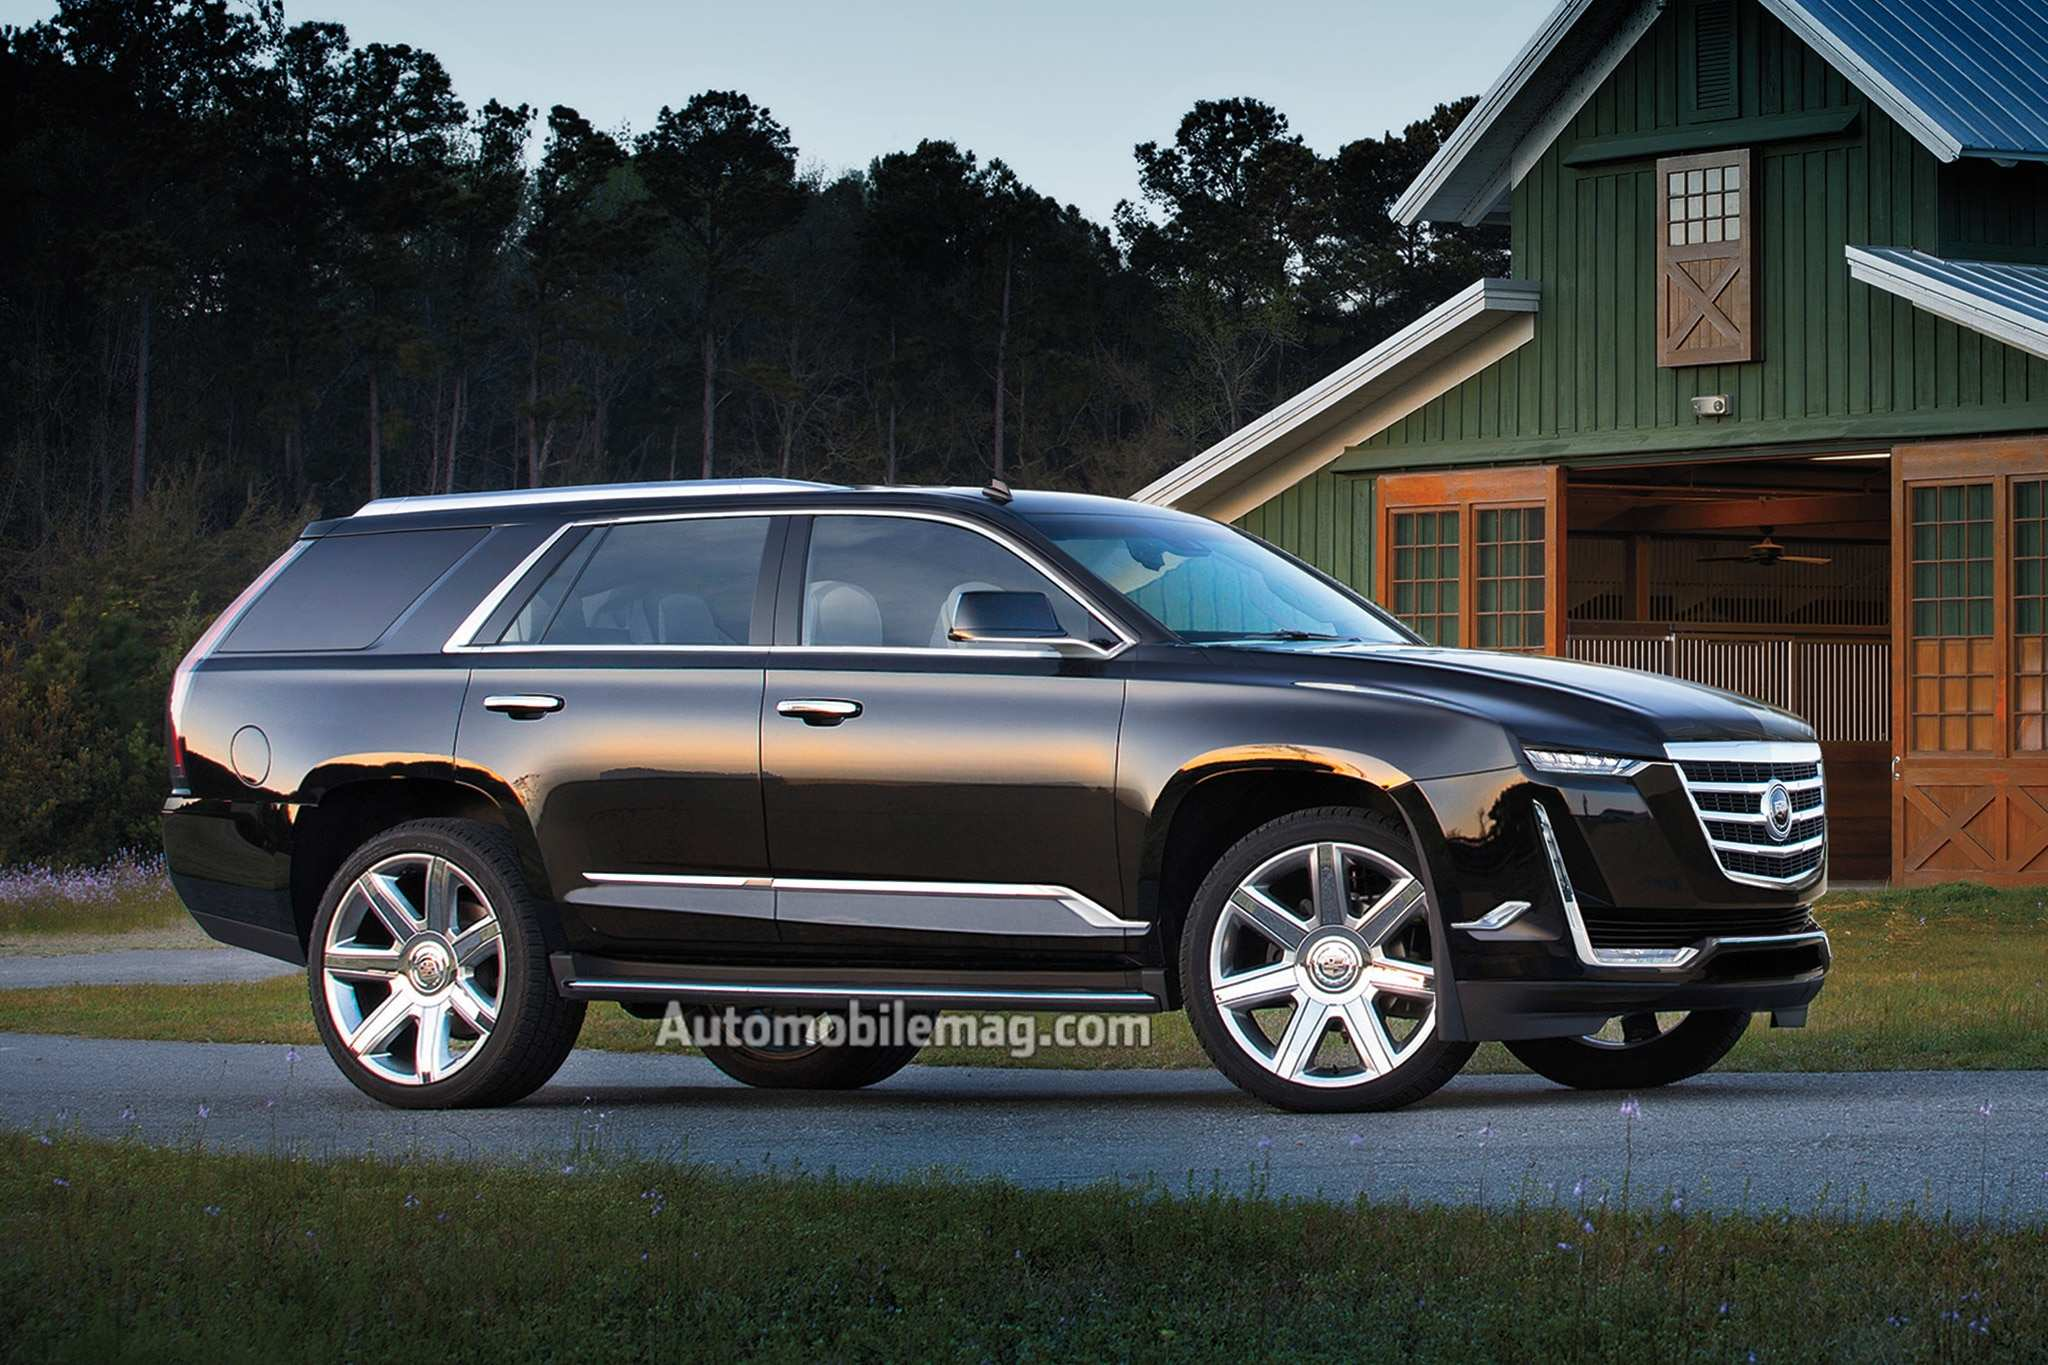 43 All New 2020 Chevrolet Tahoe Redesign Concept for 2020 Chevrolet Tahoe Redesign